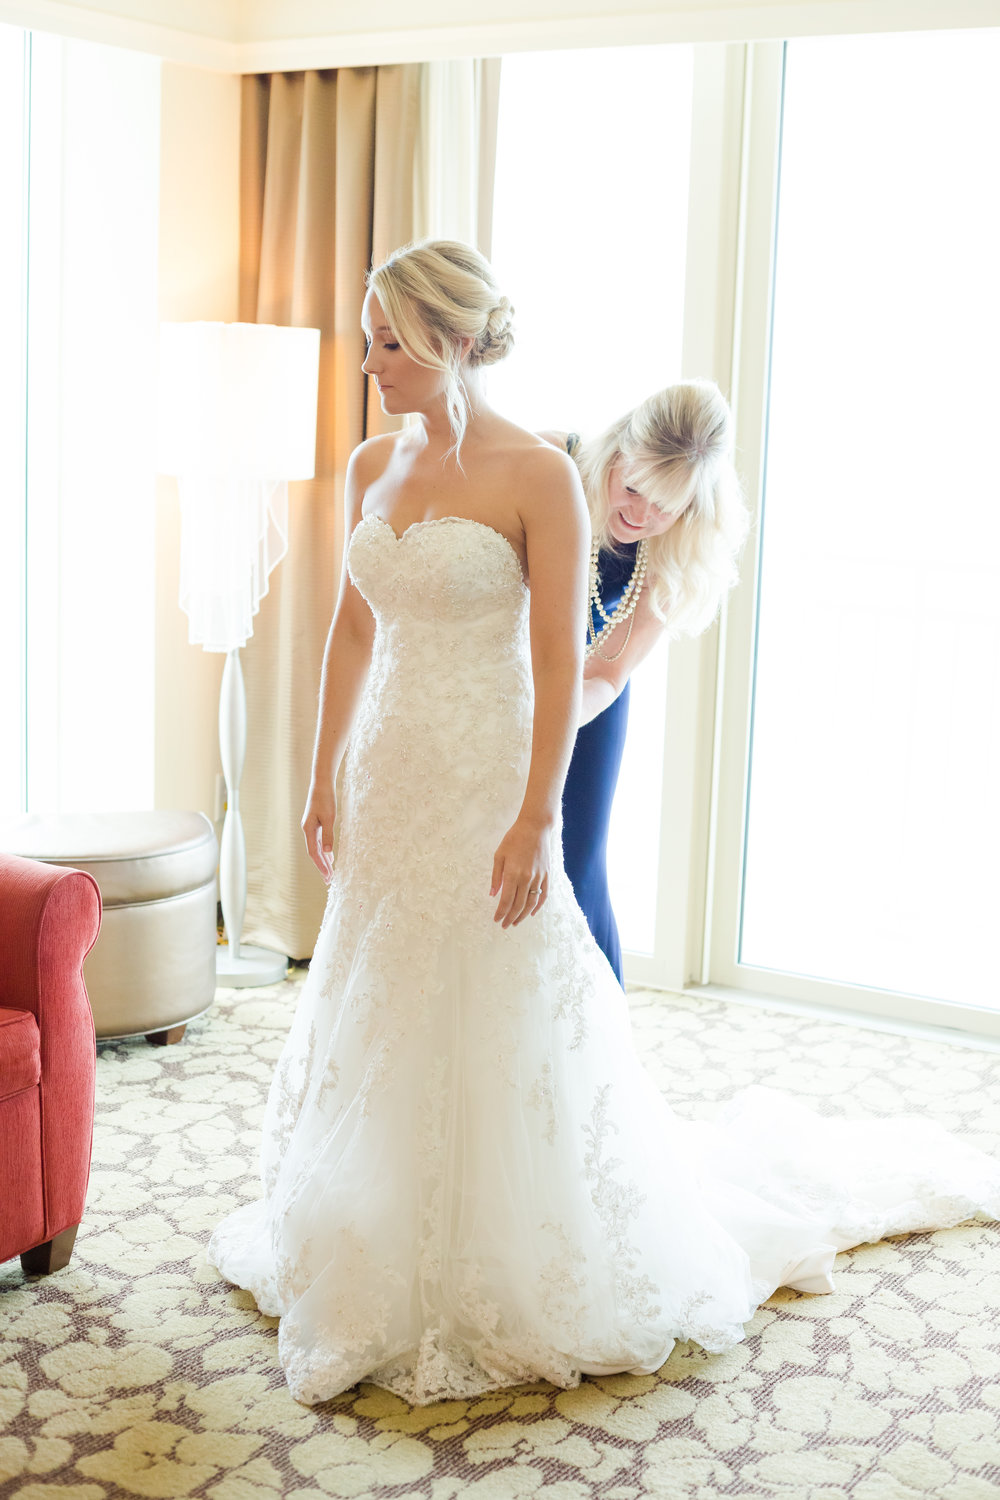 Downing_wedding_RachaelReidPhotography_-95.jpg